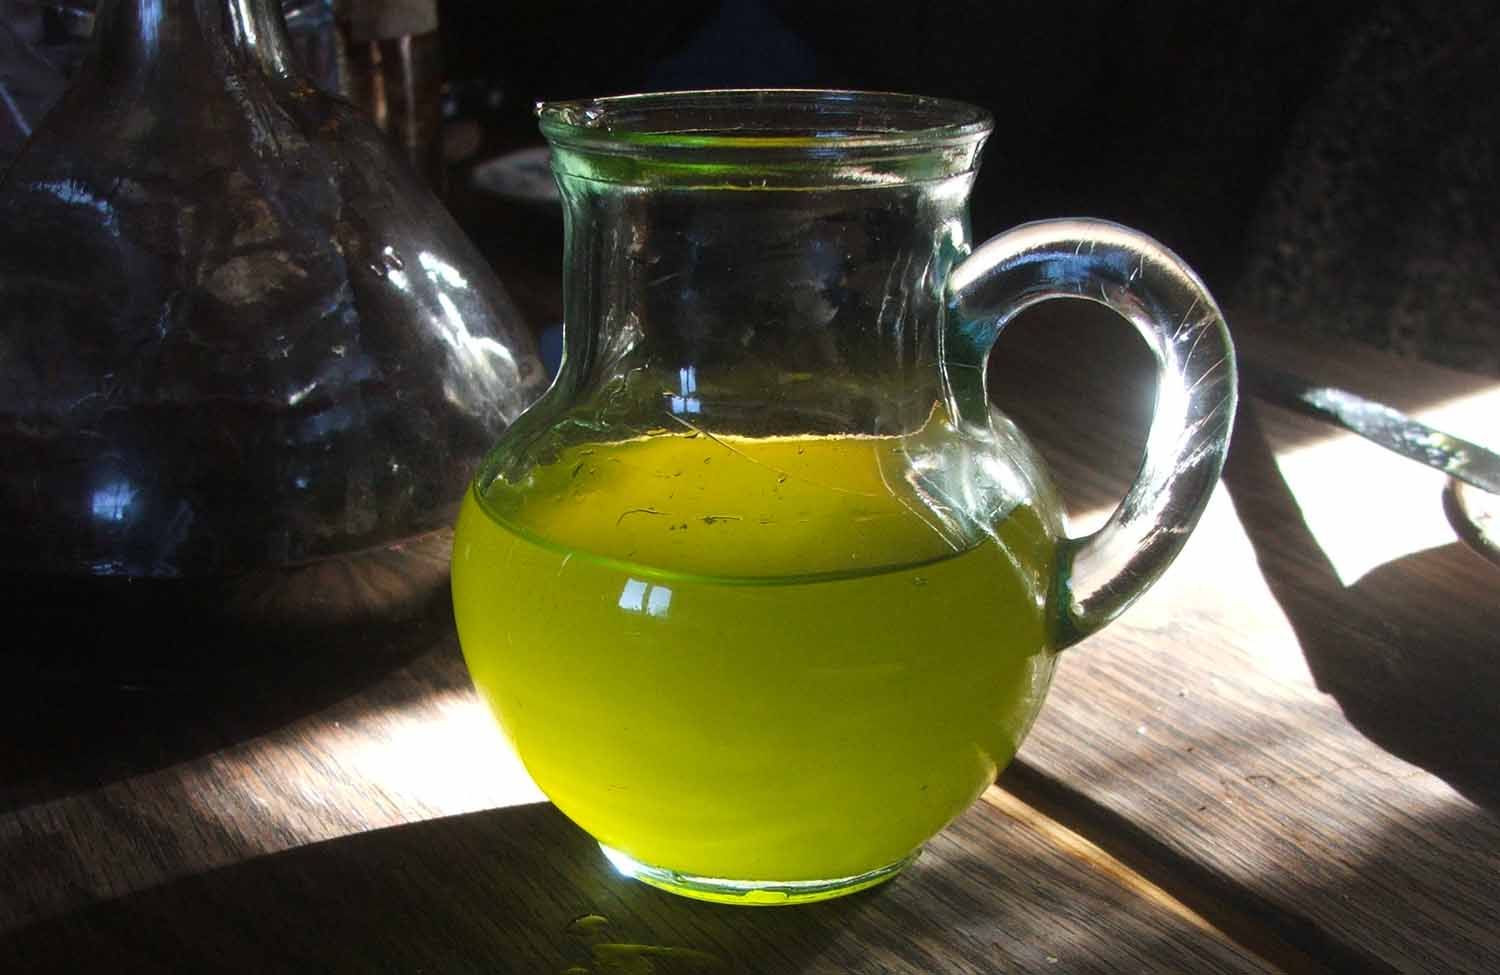 fresh, unrefined olive oil is absolutely beautiful